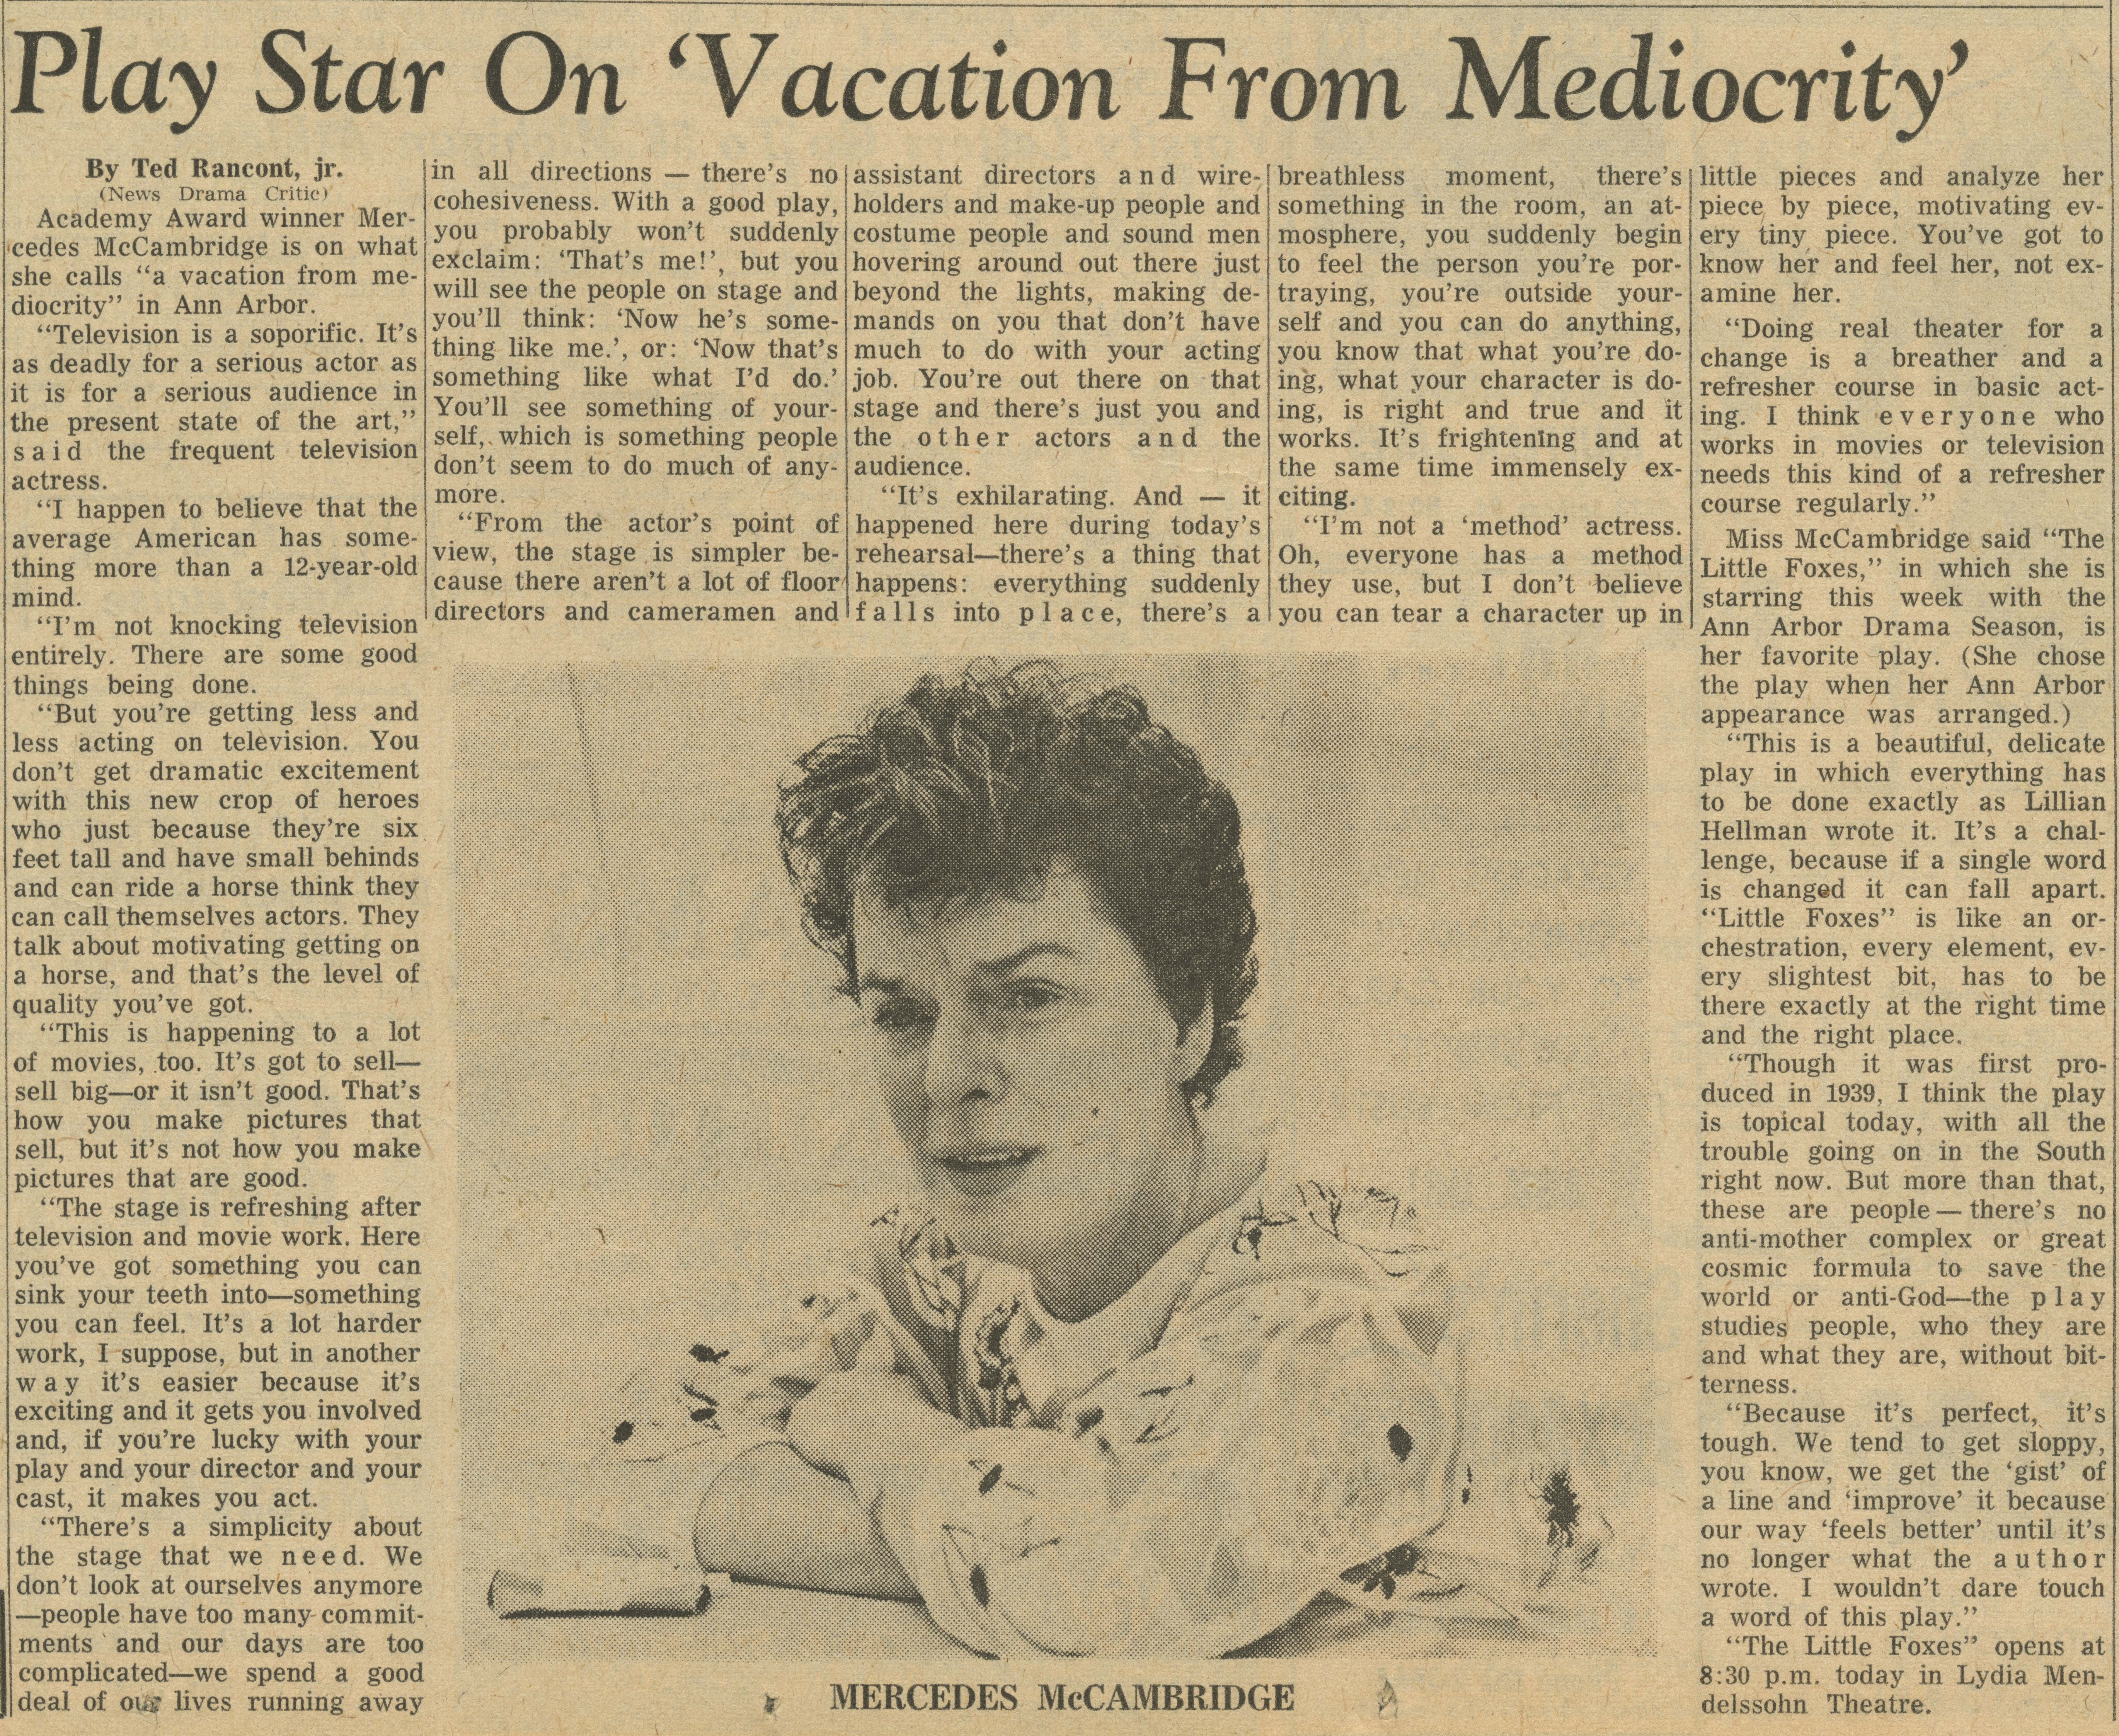 Play Star On 'Vacation From Mediocrity' image